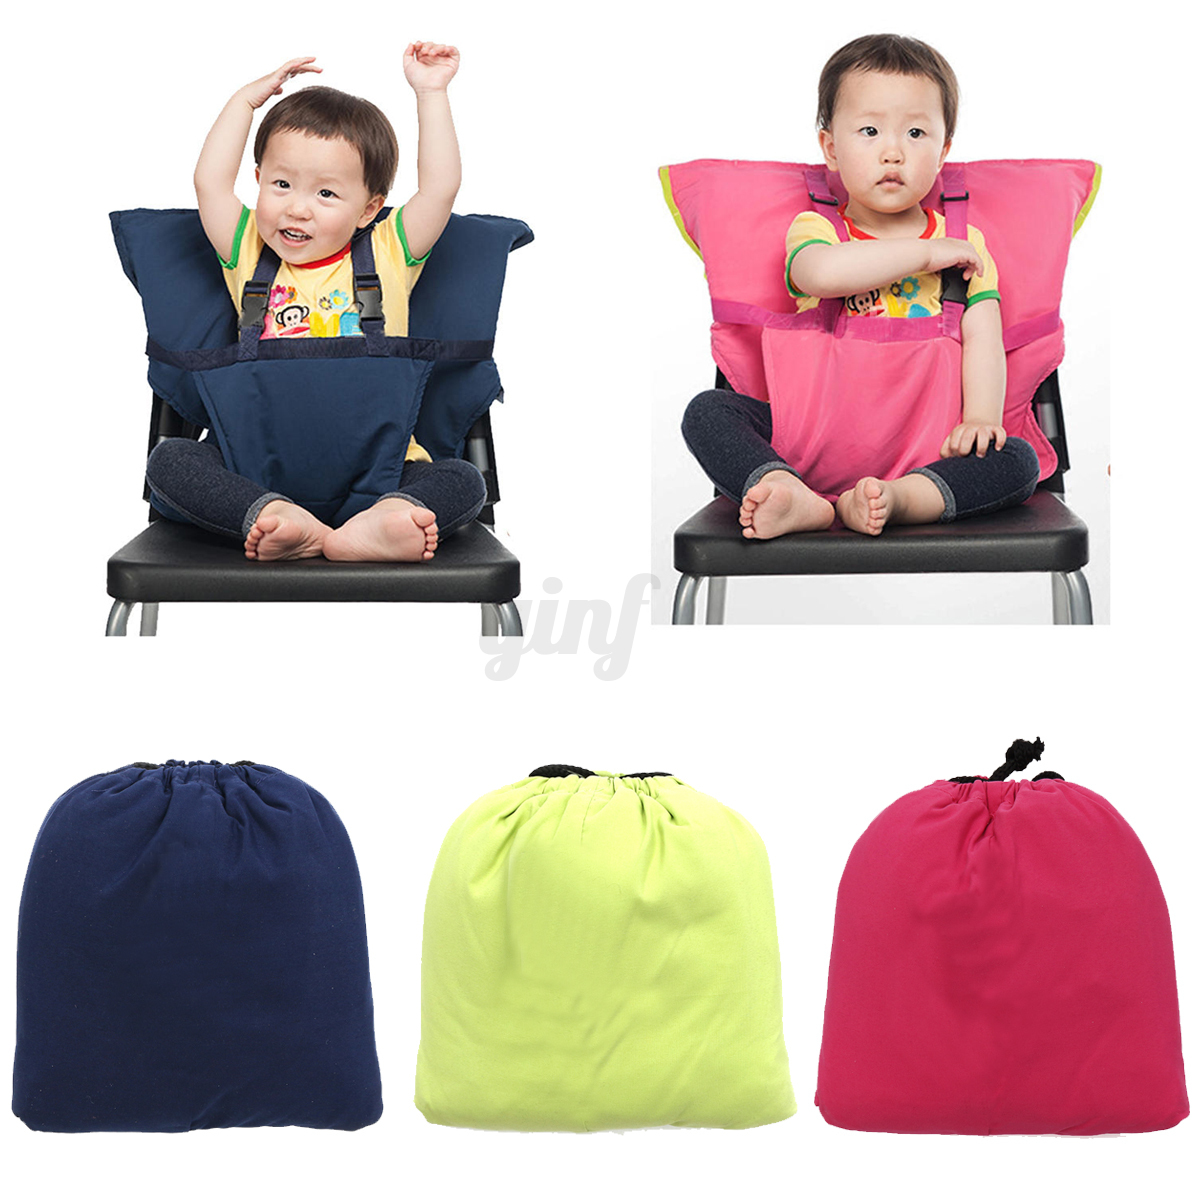 infant feeding chair best office reddit portable baby kids high harness seat